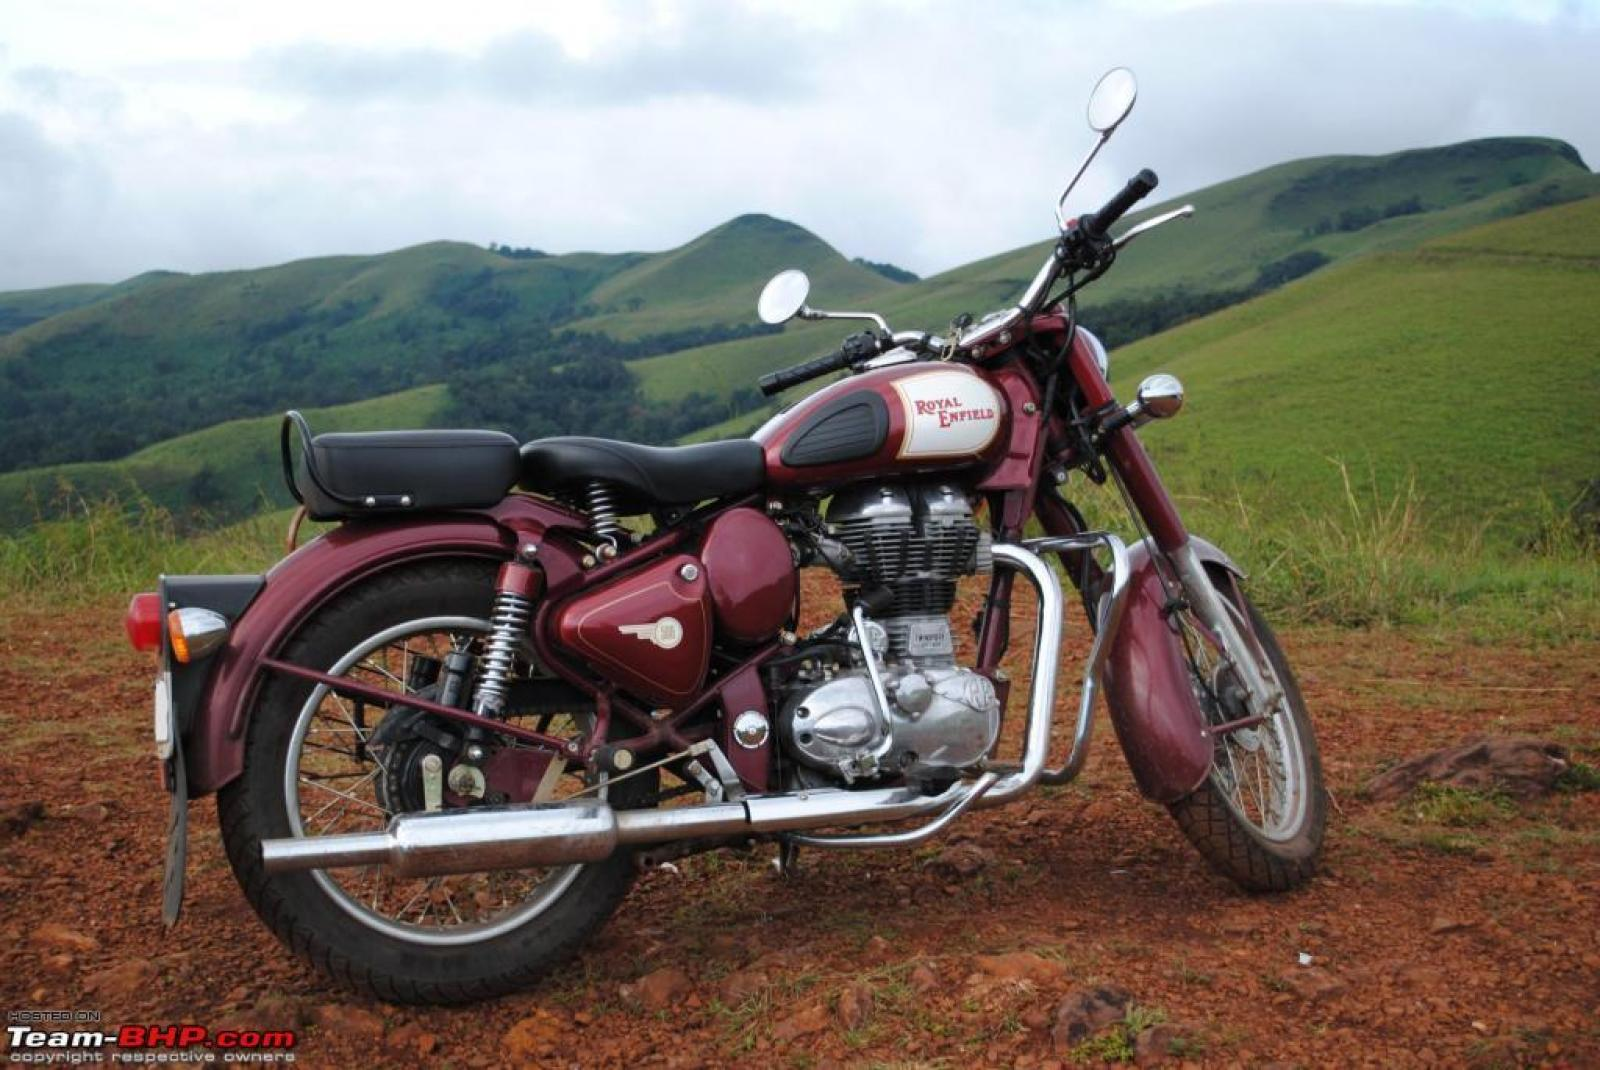 1991 Enfield 500 Bullet (reduced effect) #5